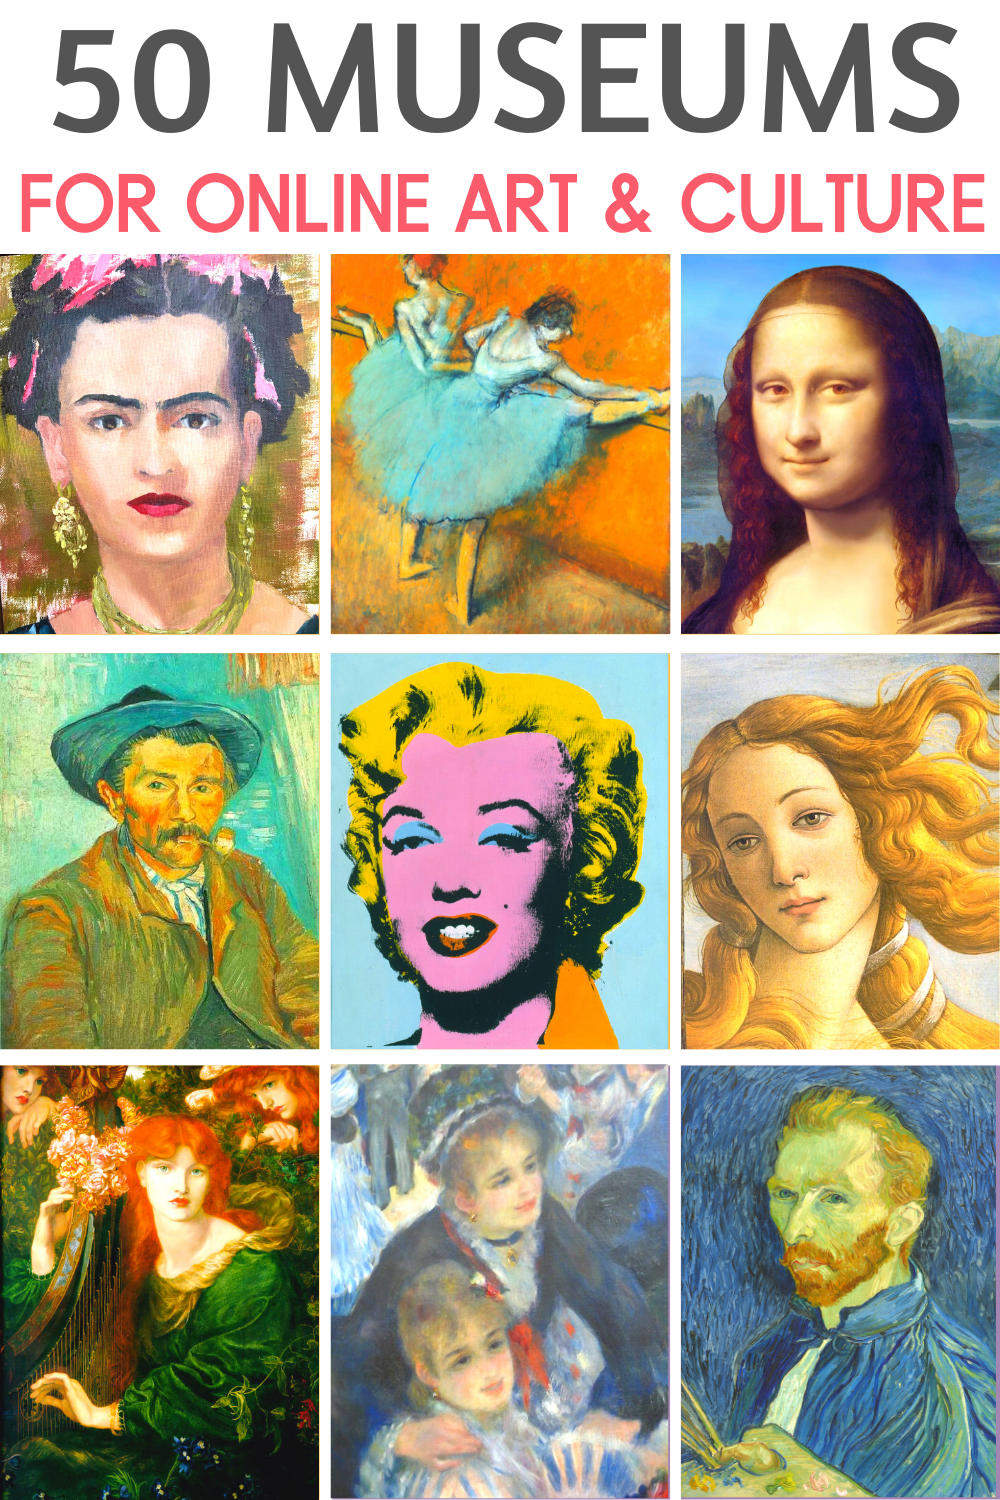 50 Virtual Museums for Online Art and Culture at Home